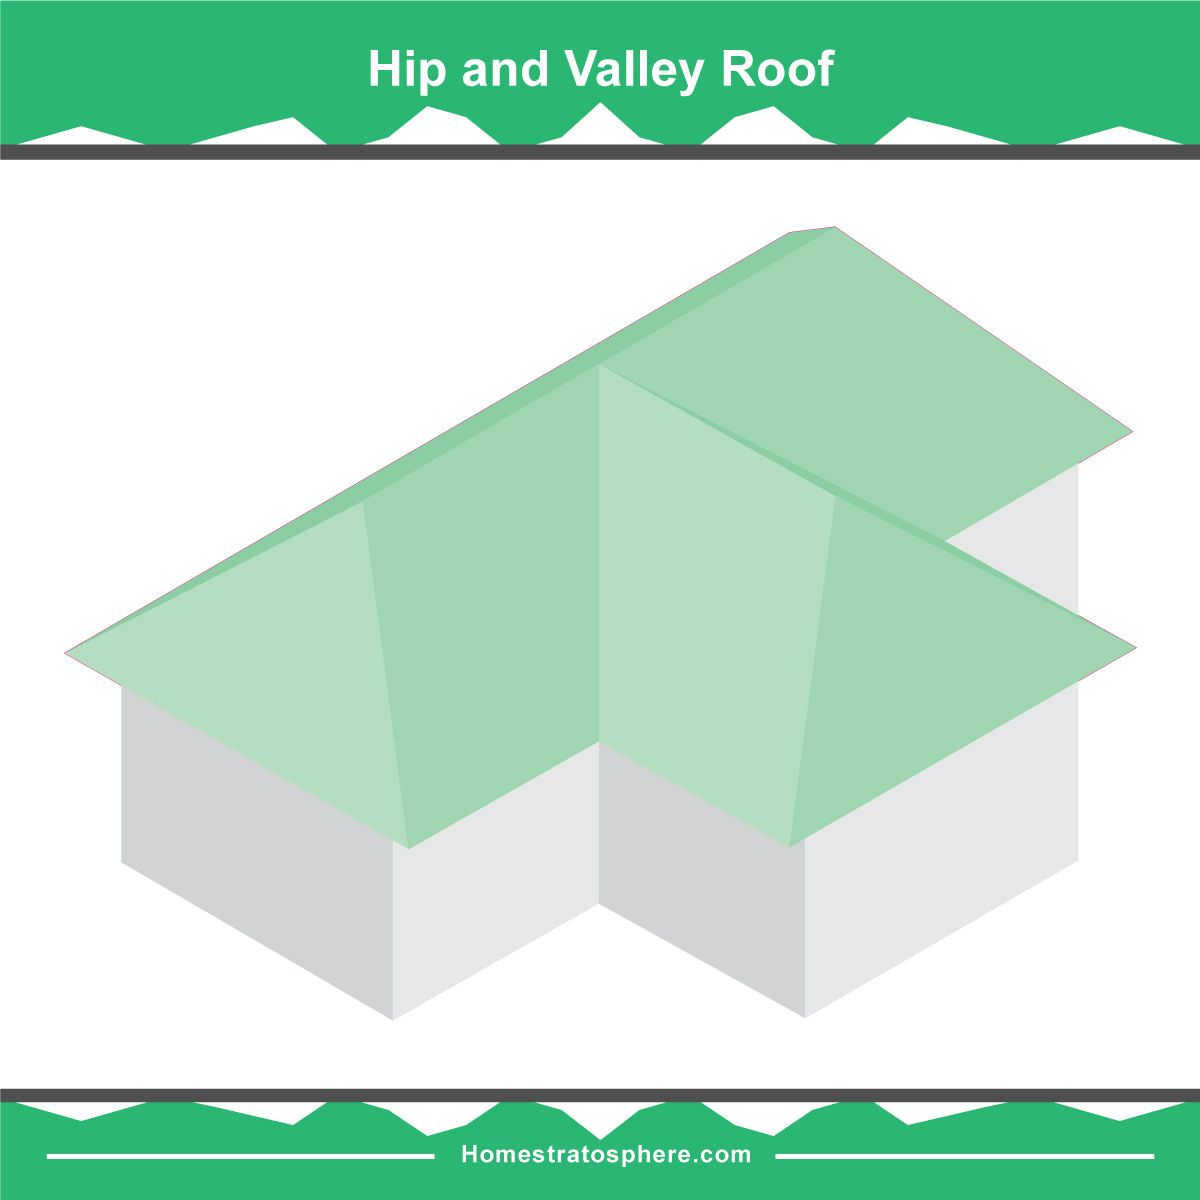 36 Types Of Roofs Styles For Houses Illustrated Roof Design Examples Roof Design Roof Styles Hip Roof Design